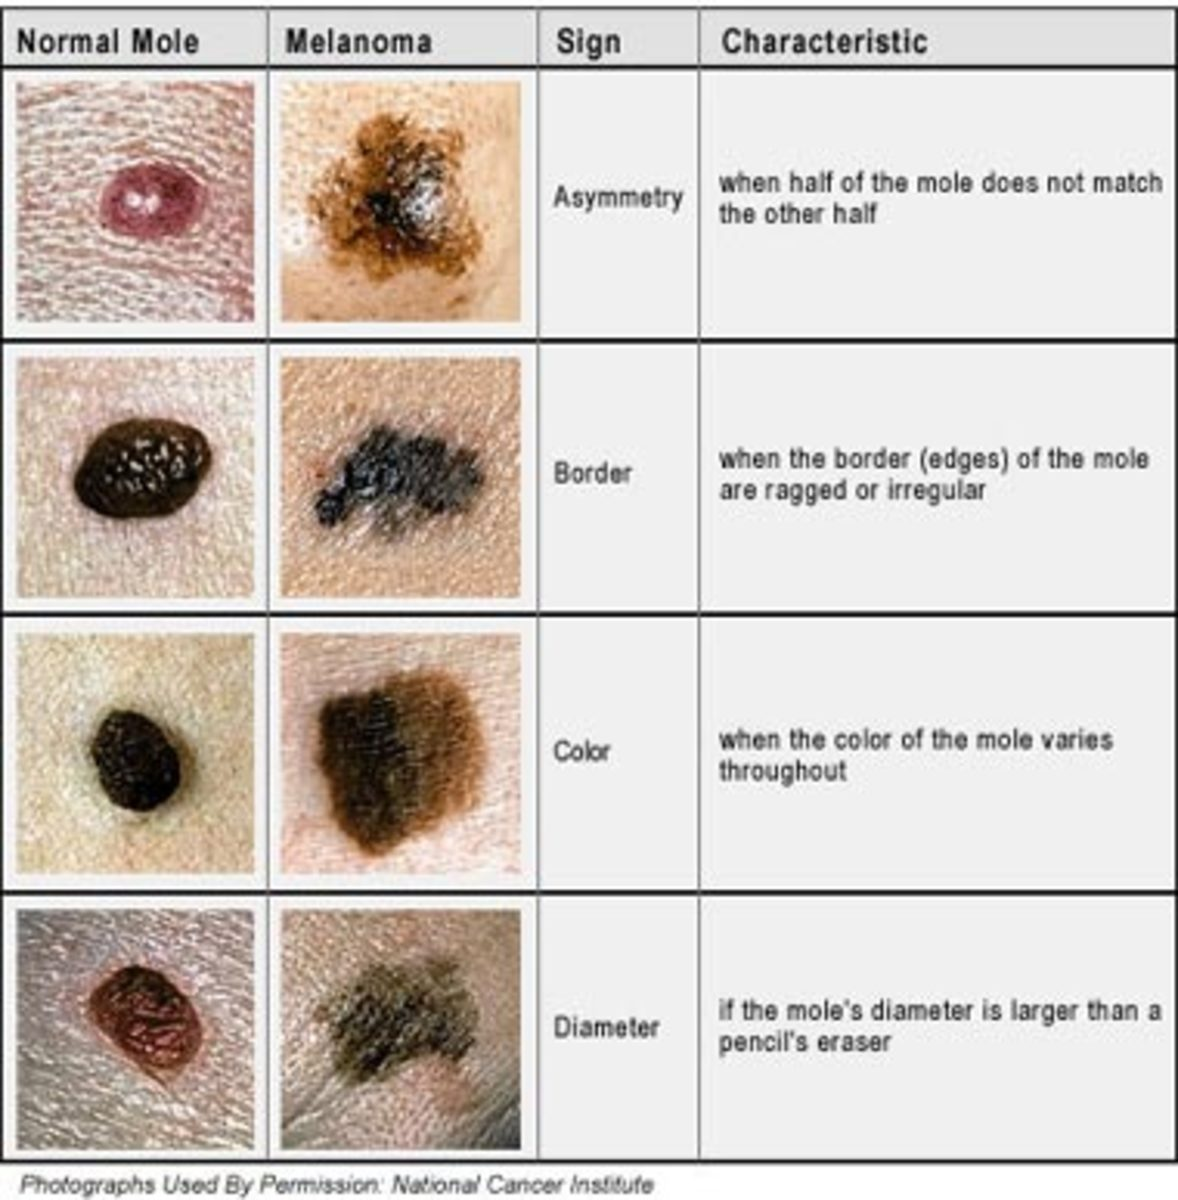 Malignant Melanoma - the  mole in the skin!